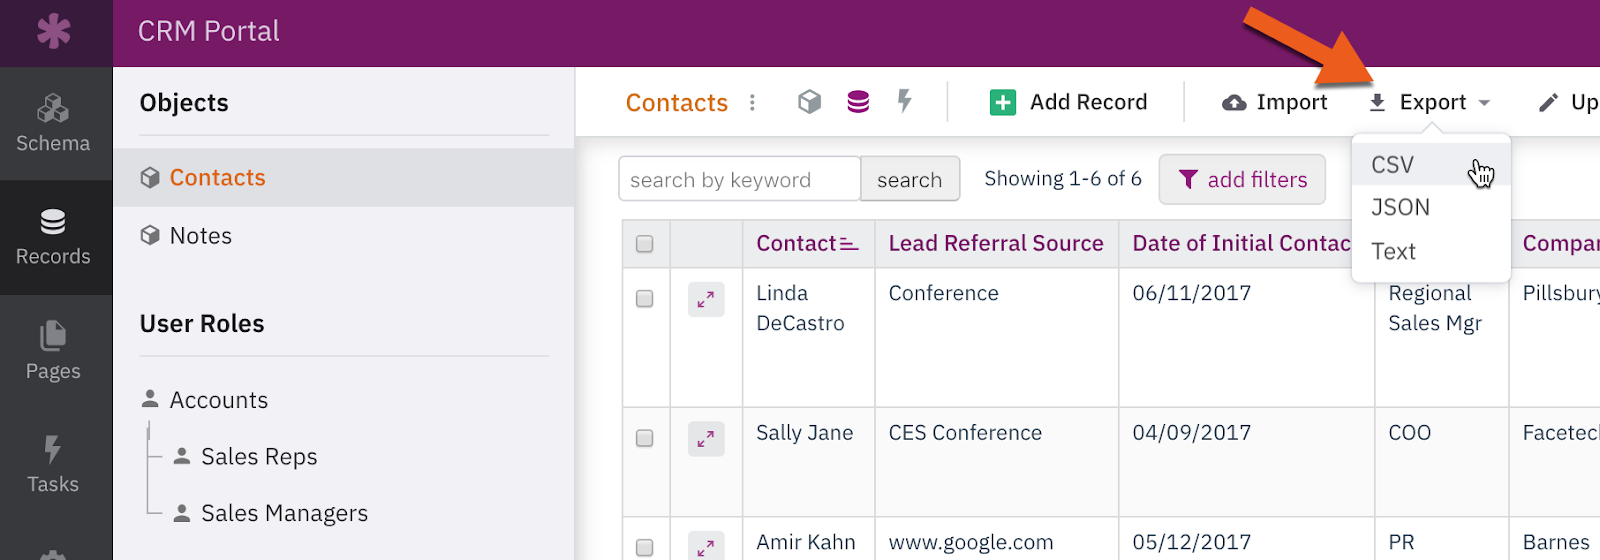 Arrow pointing to the Export button for objects in the Records section of the Builder